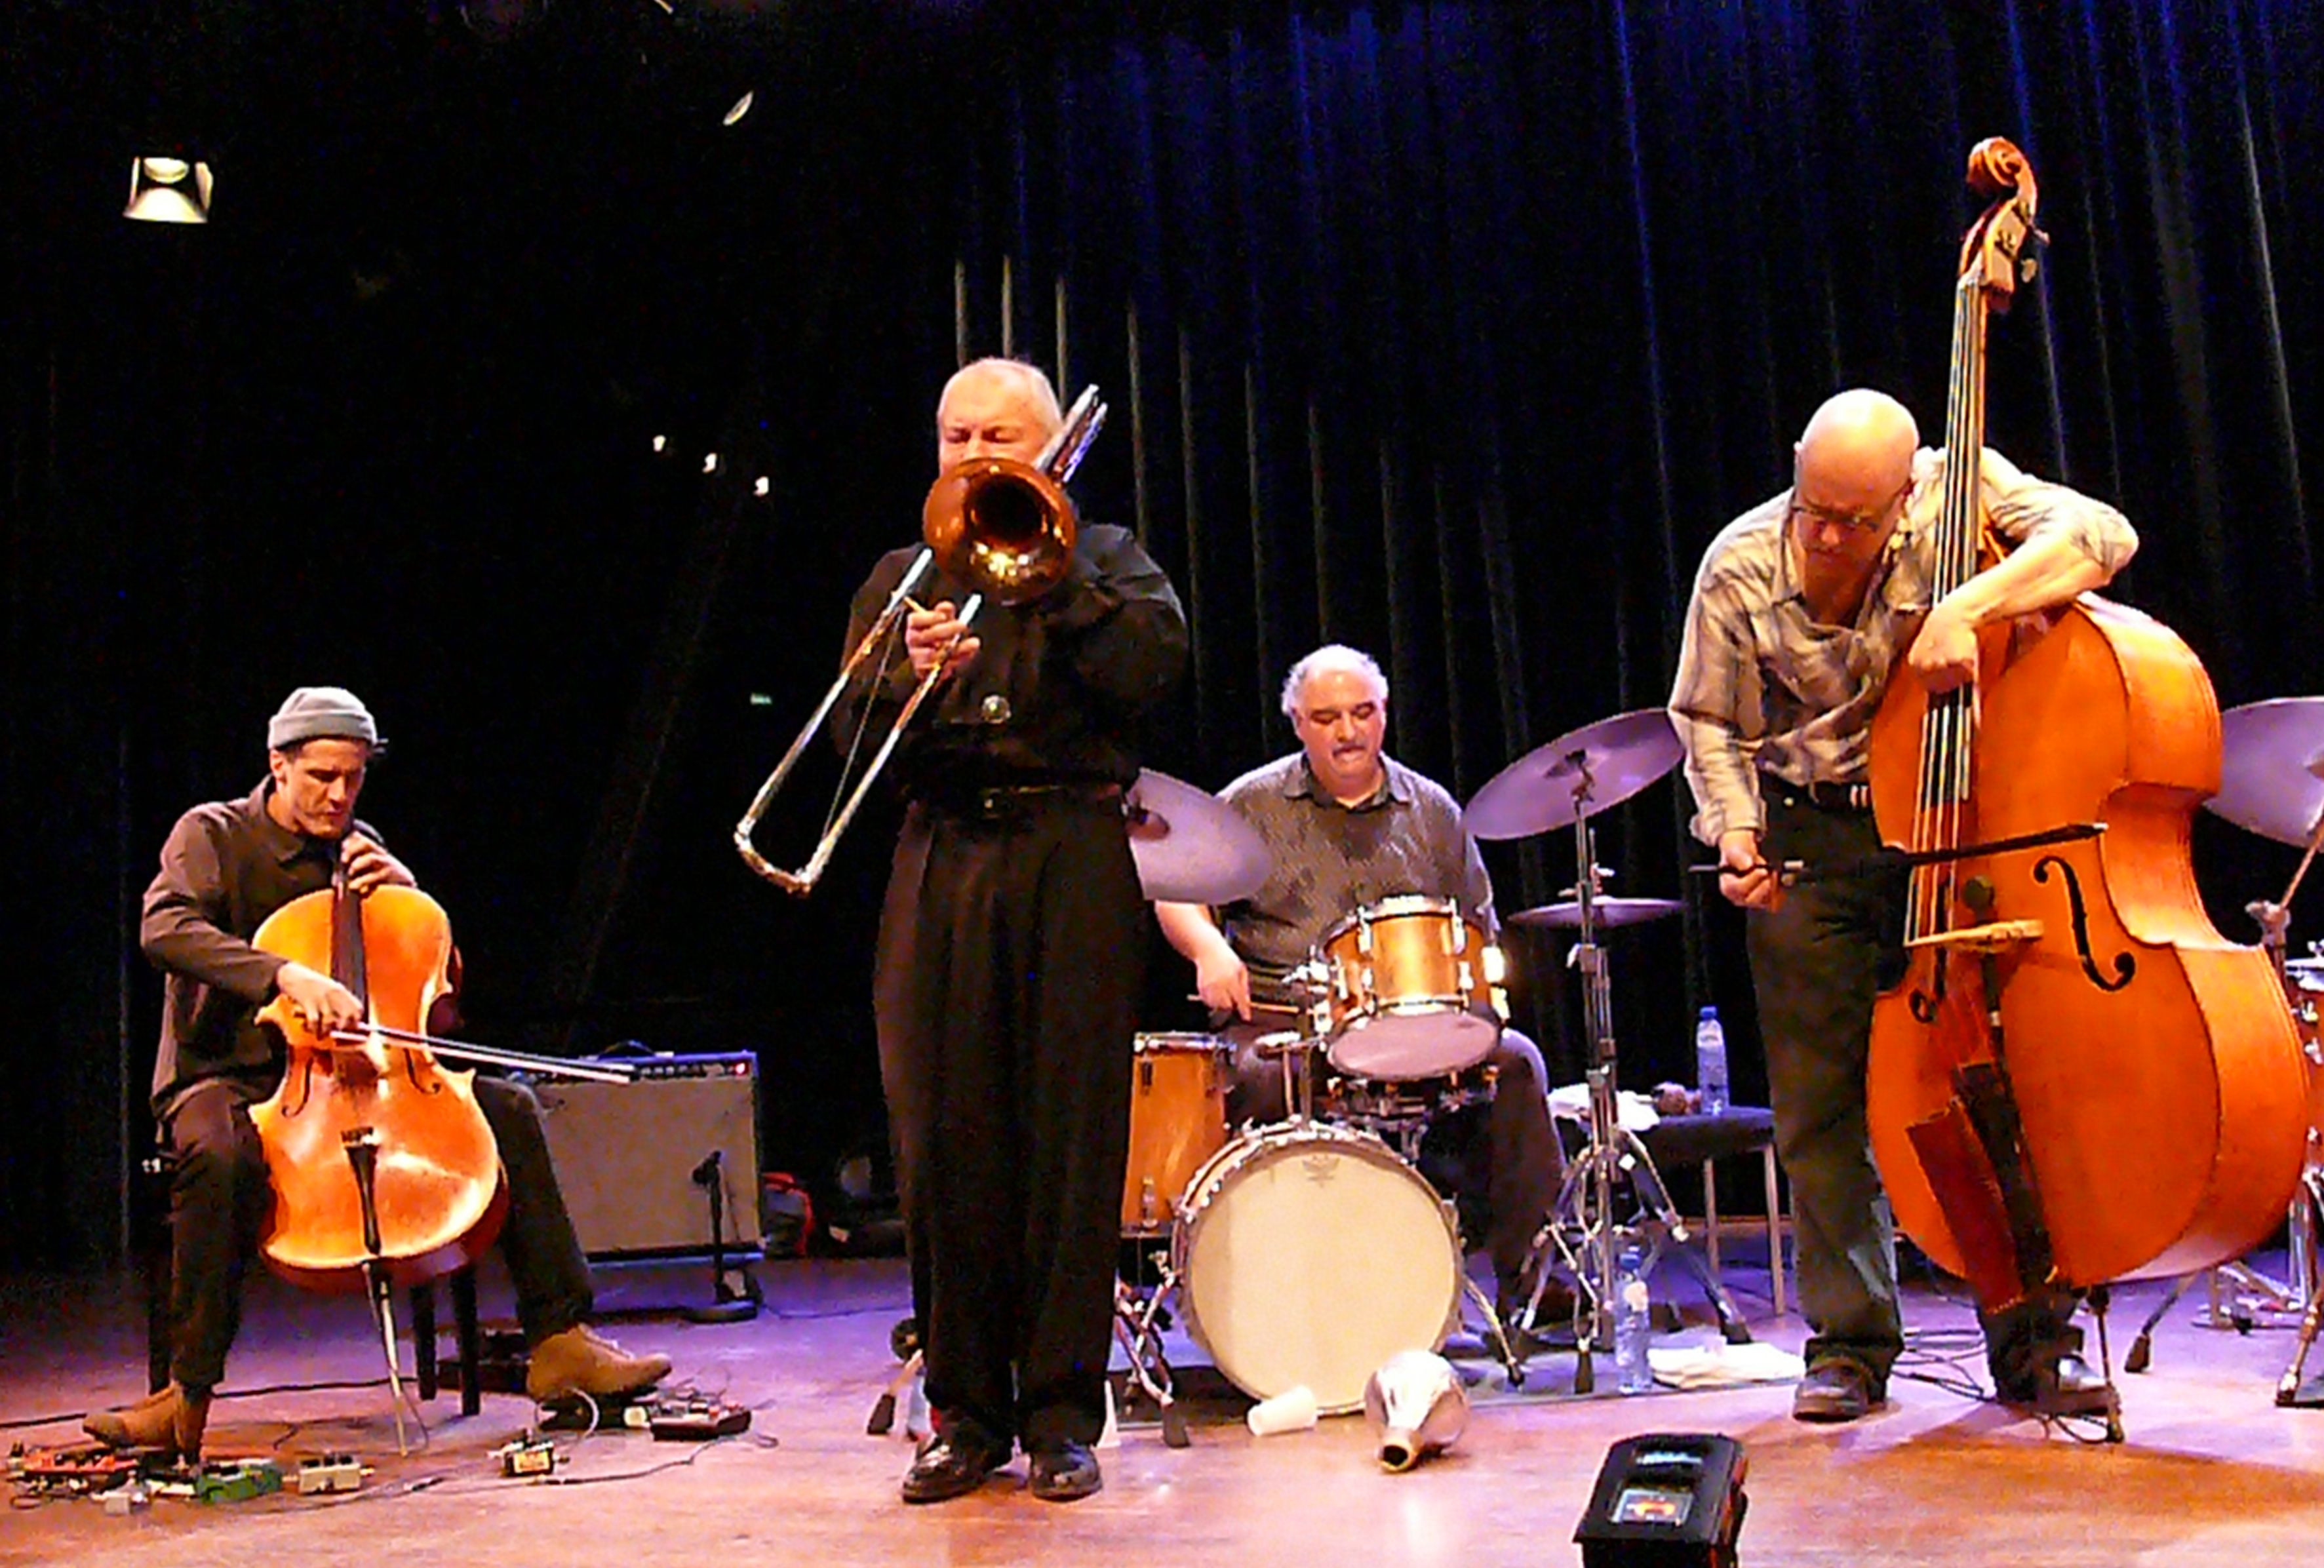 Brotzmann Chicago Tentet at the Bimhuis in Amsterdam, 13 February 2009